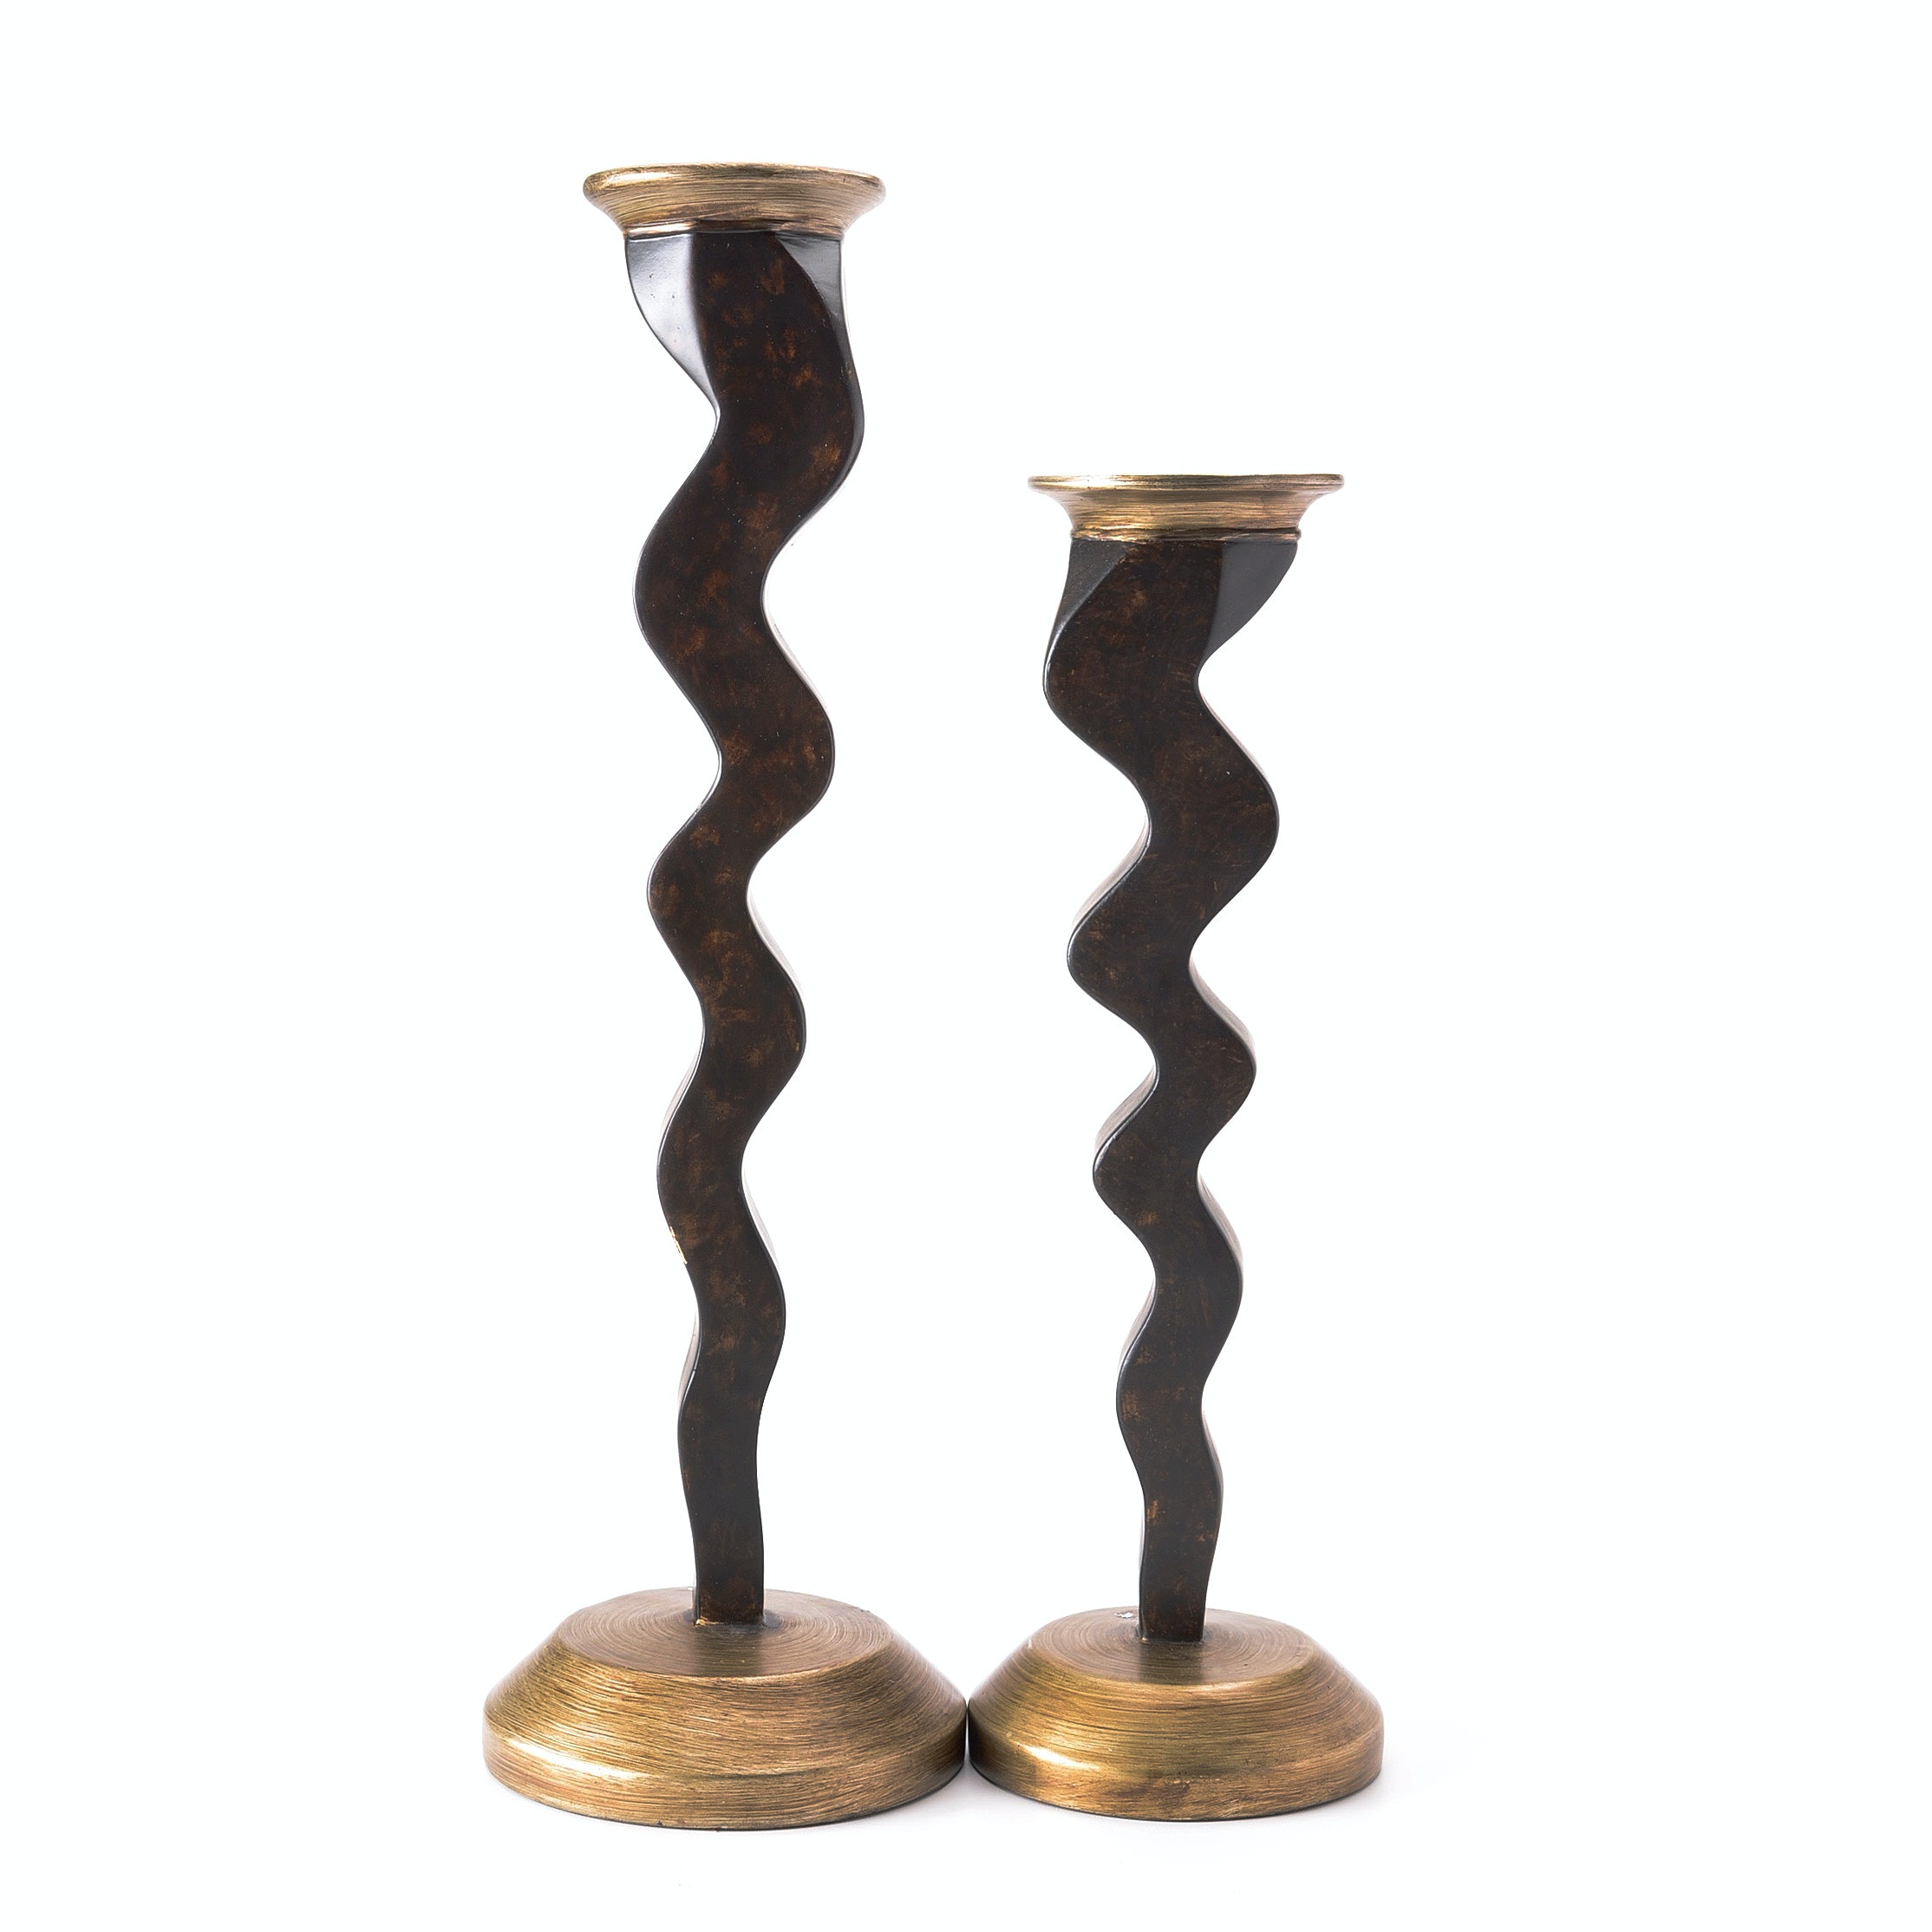 Pair of Contemporary Candle Holders